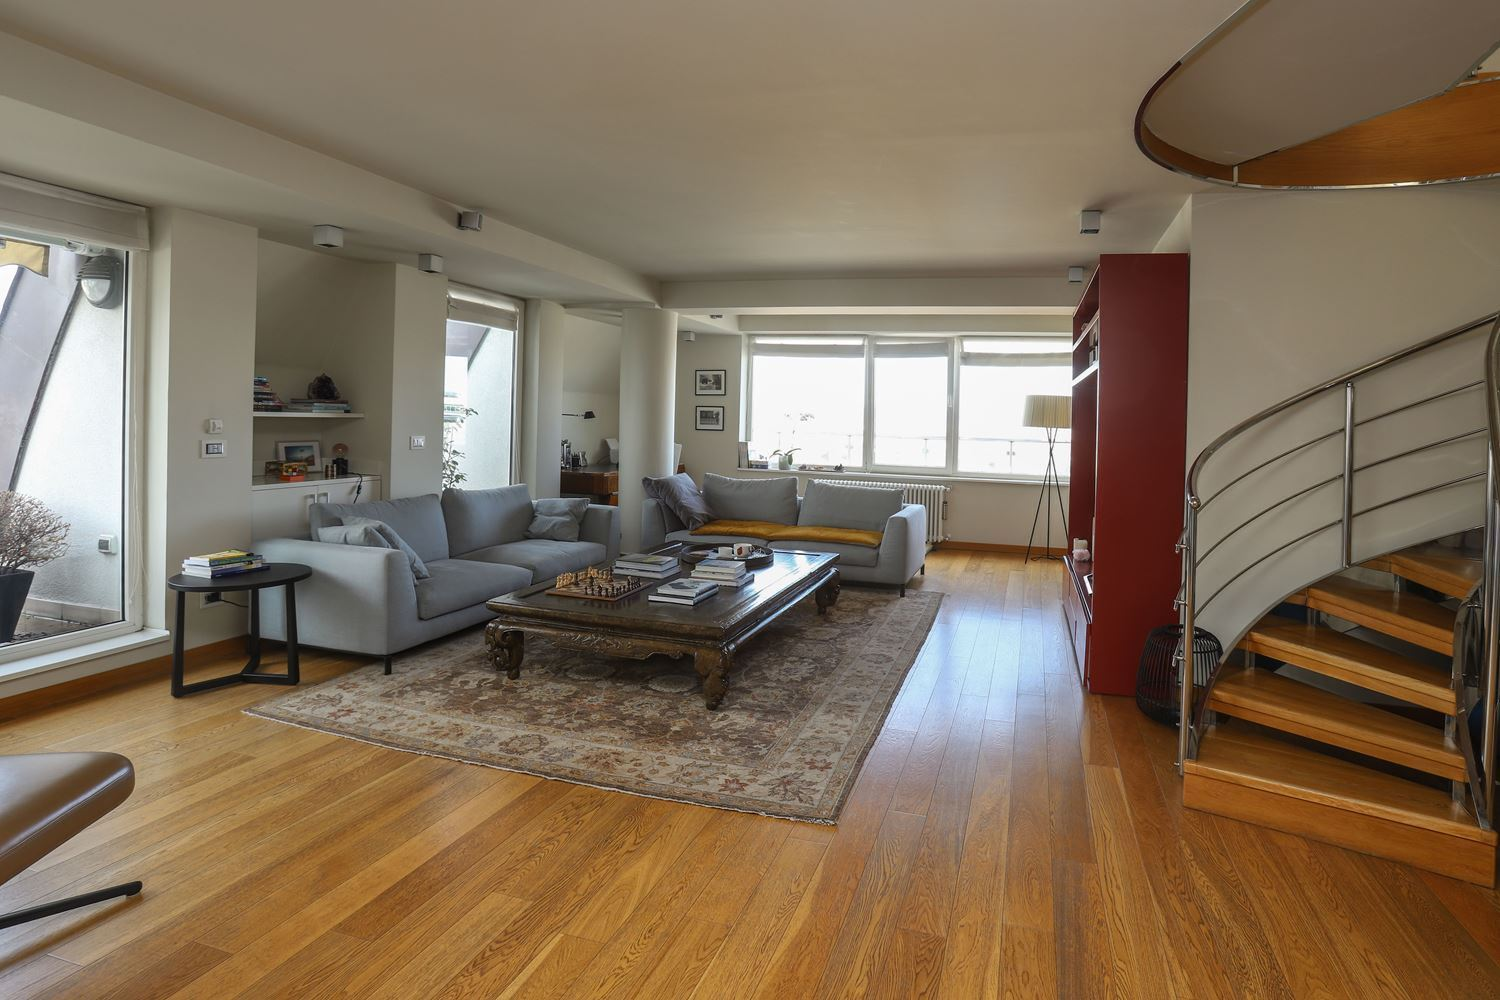 4-bedroom Apartment for Rent, Center